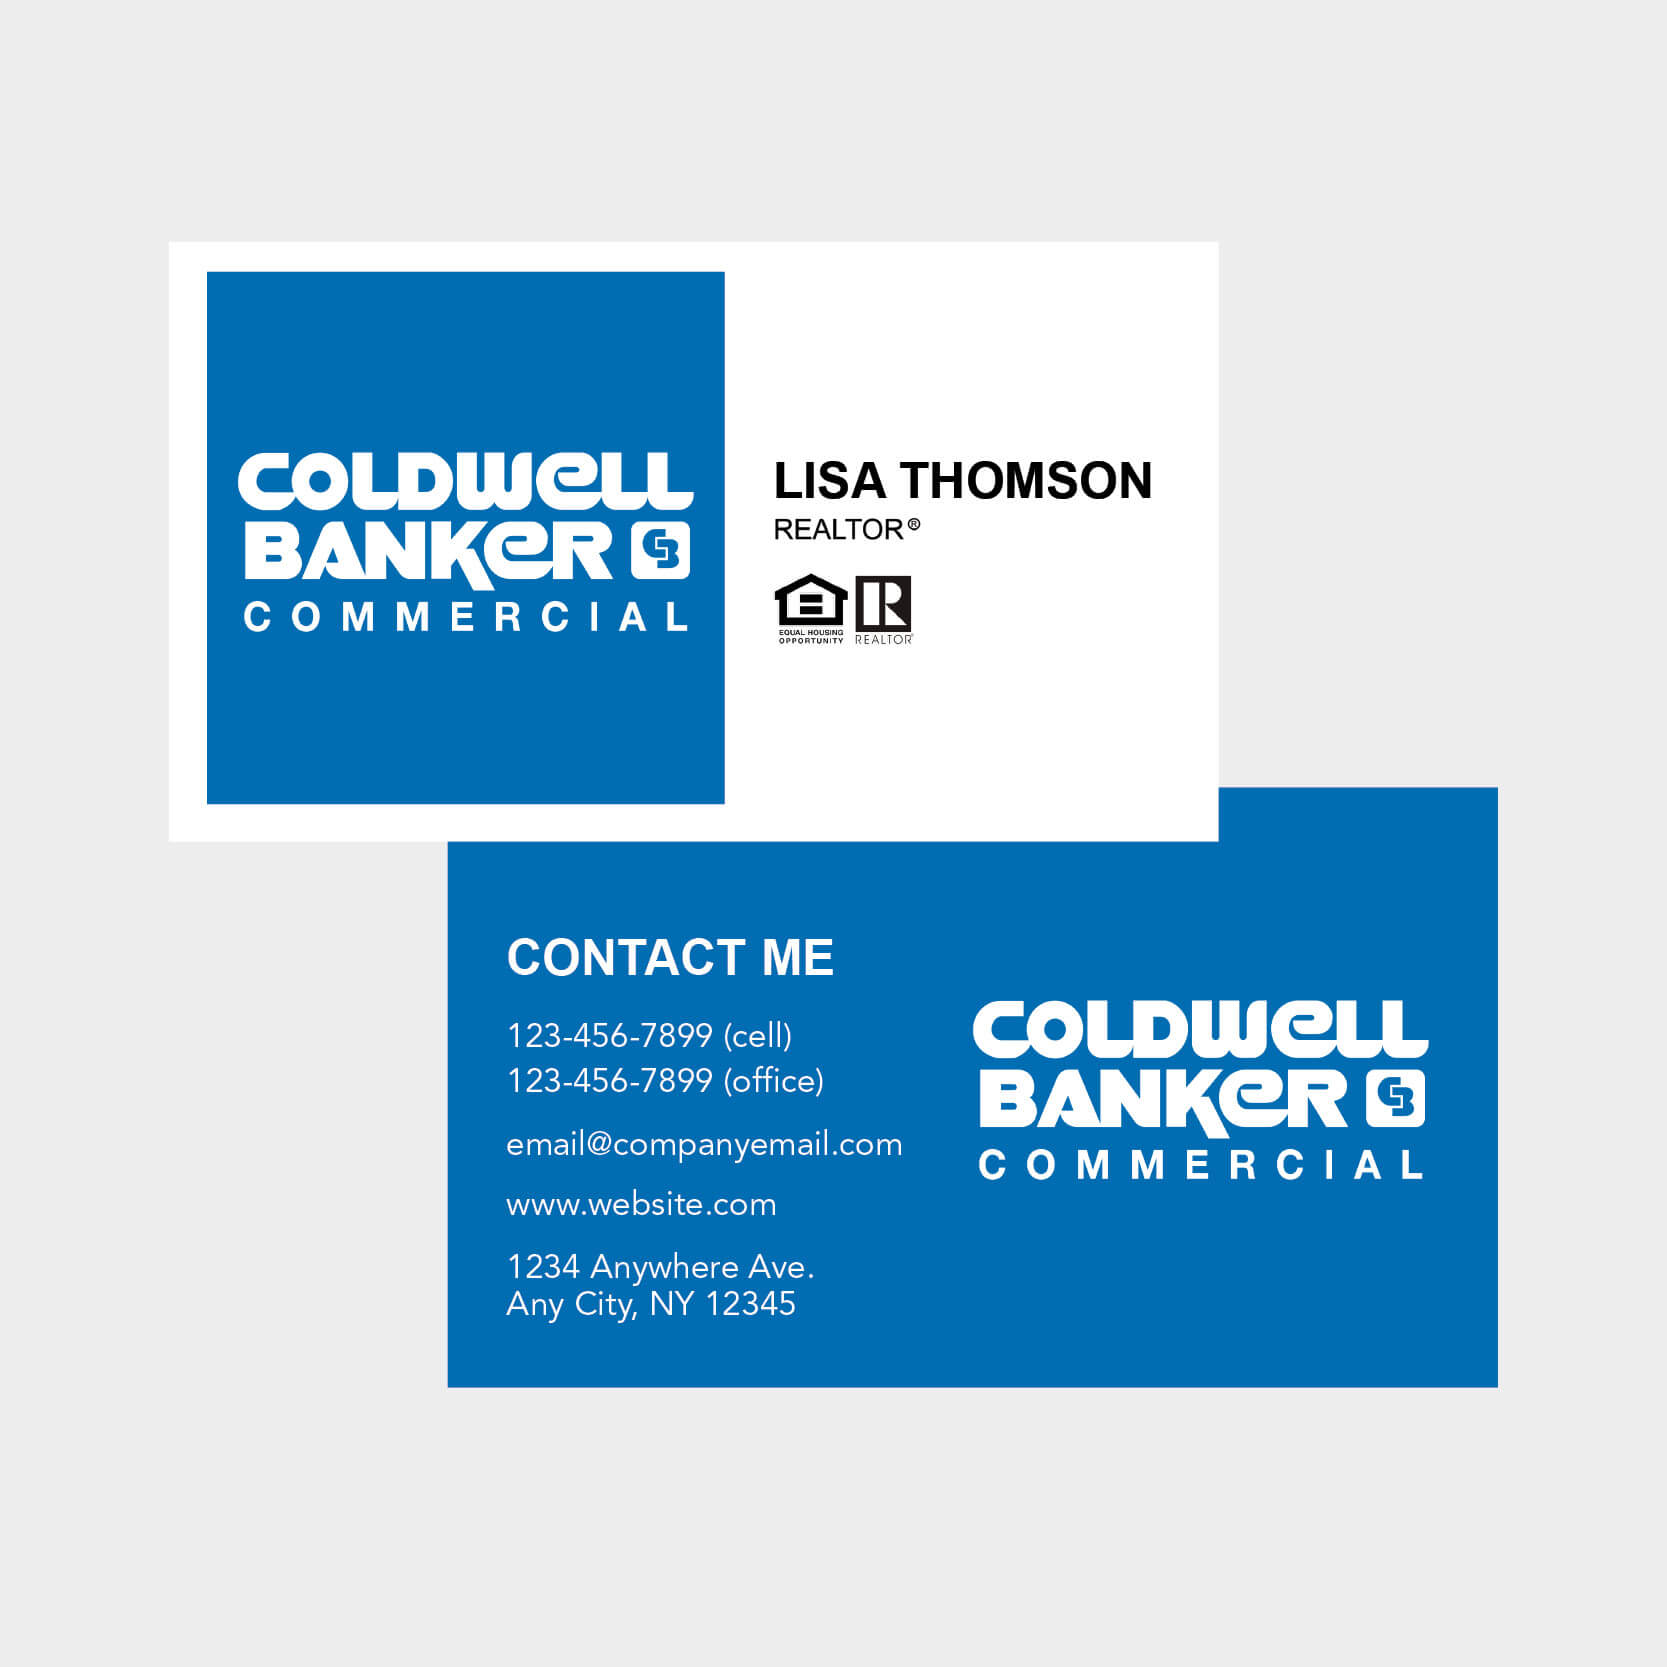 Coldwell Banker Business Cards In Coldwell Banker Business Card Template